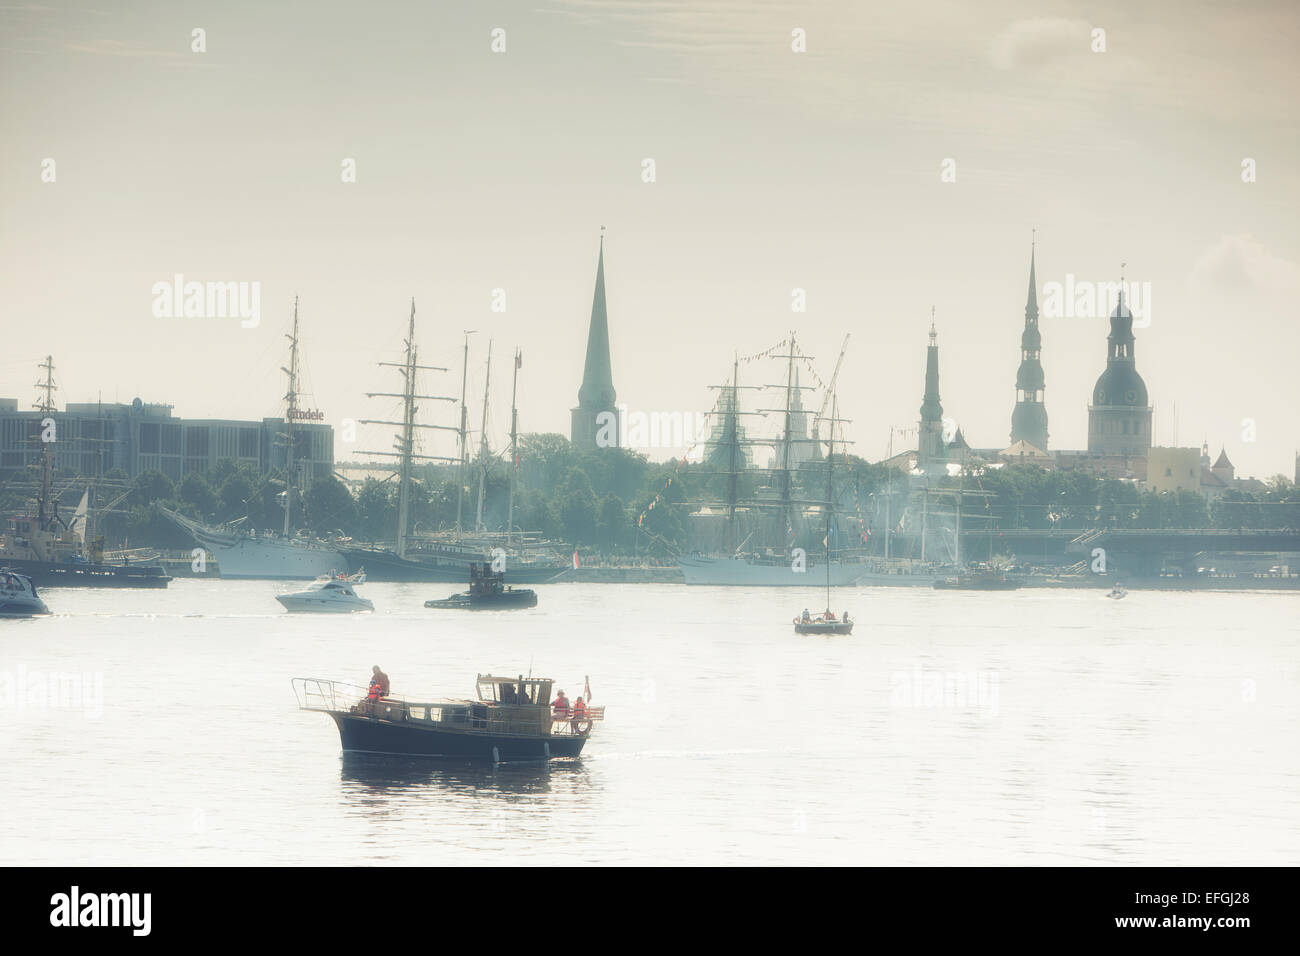 Regatta on the background of the Old Town in the morning. Riga, Latvia - Stock Image